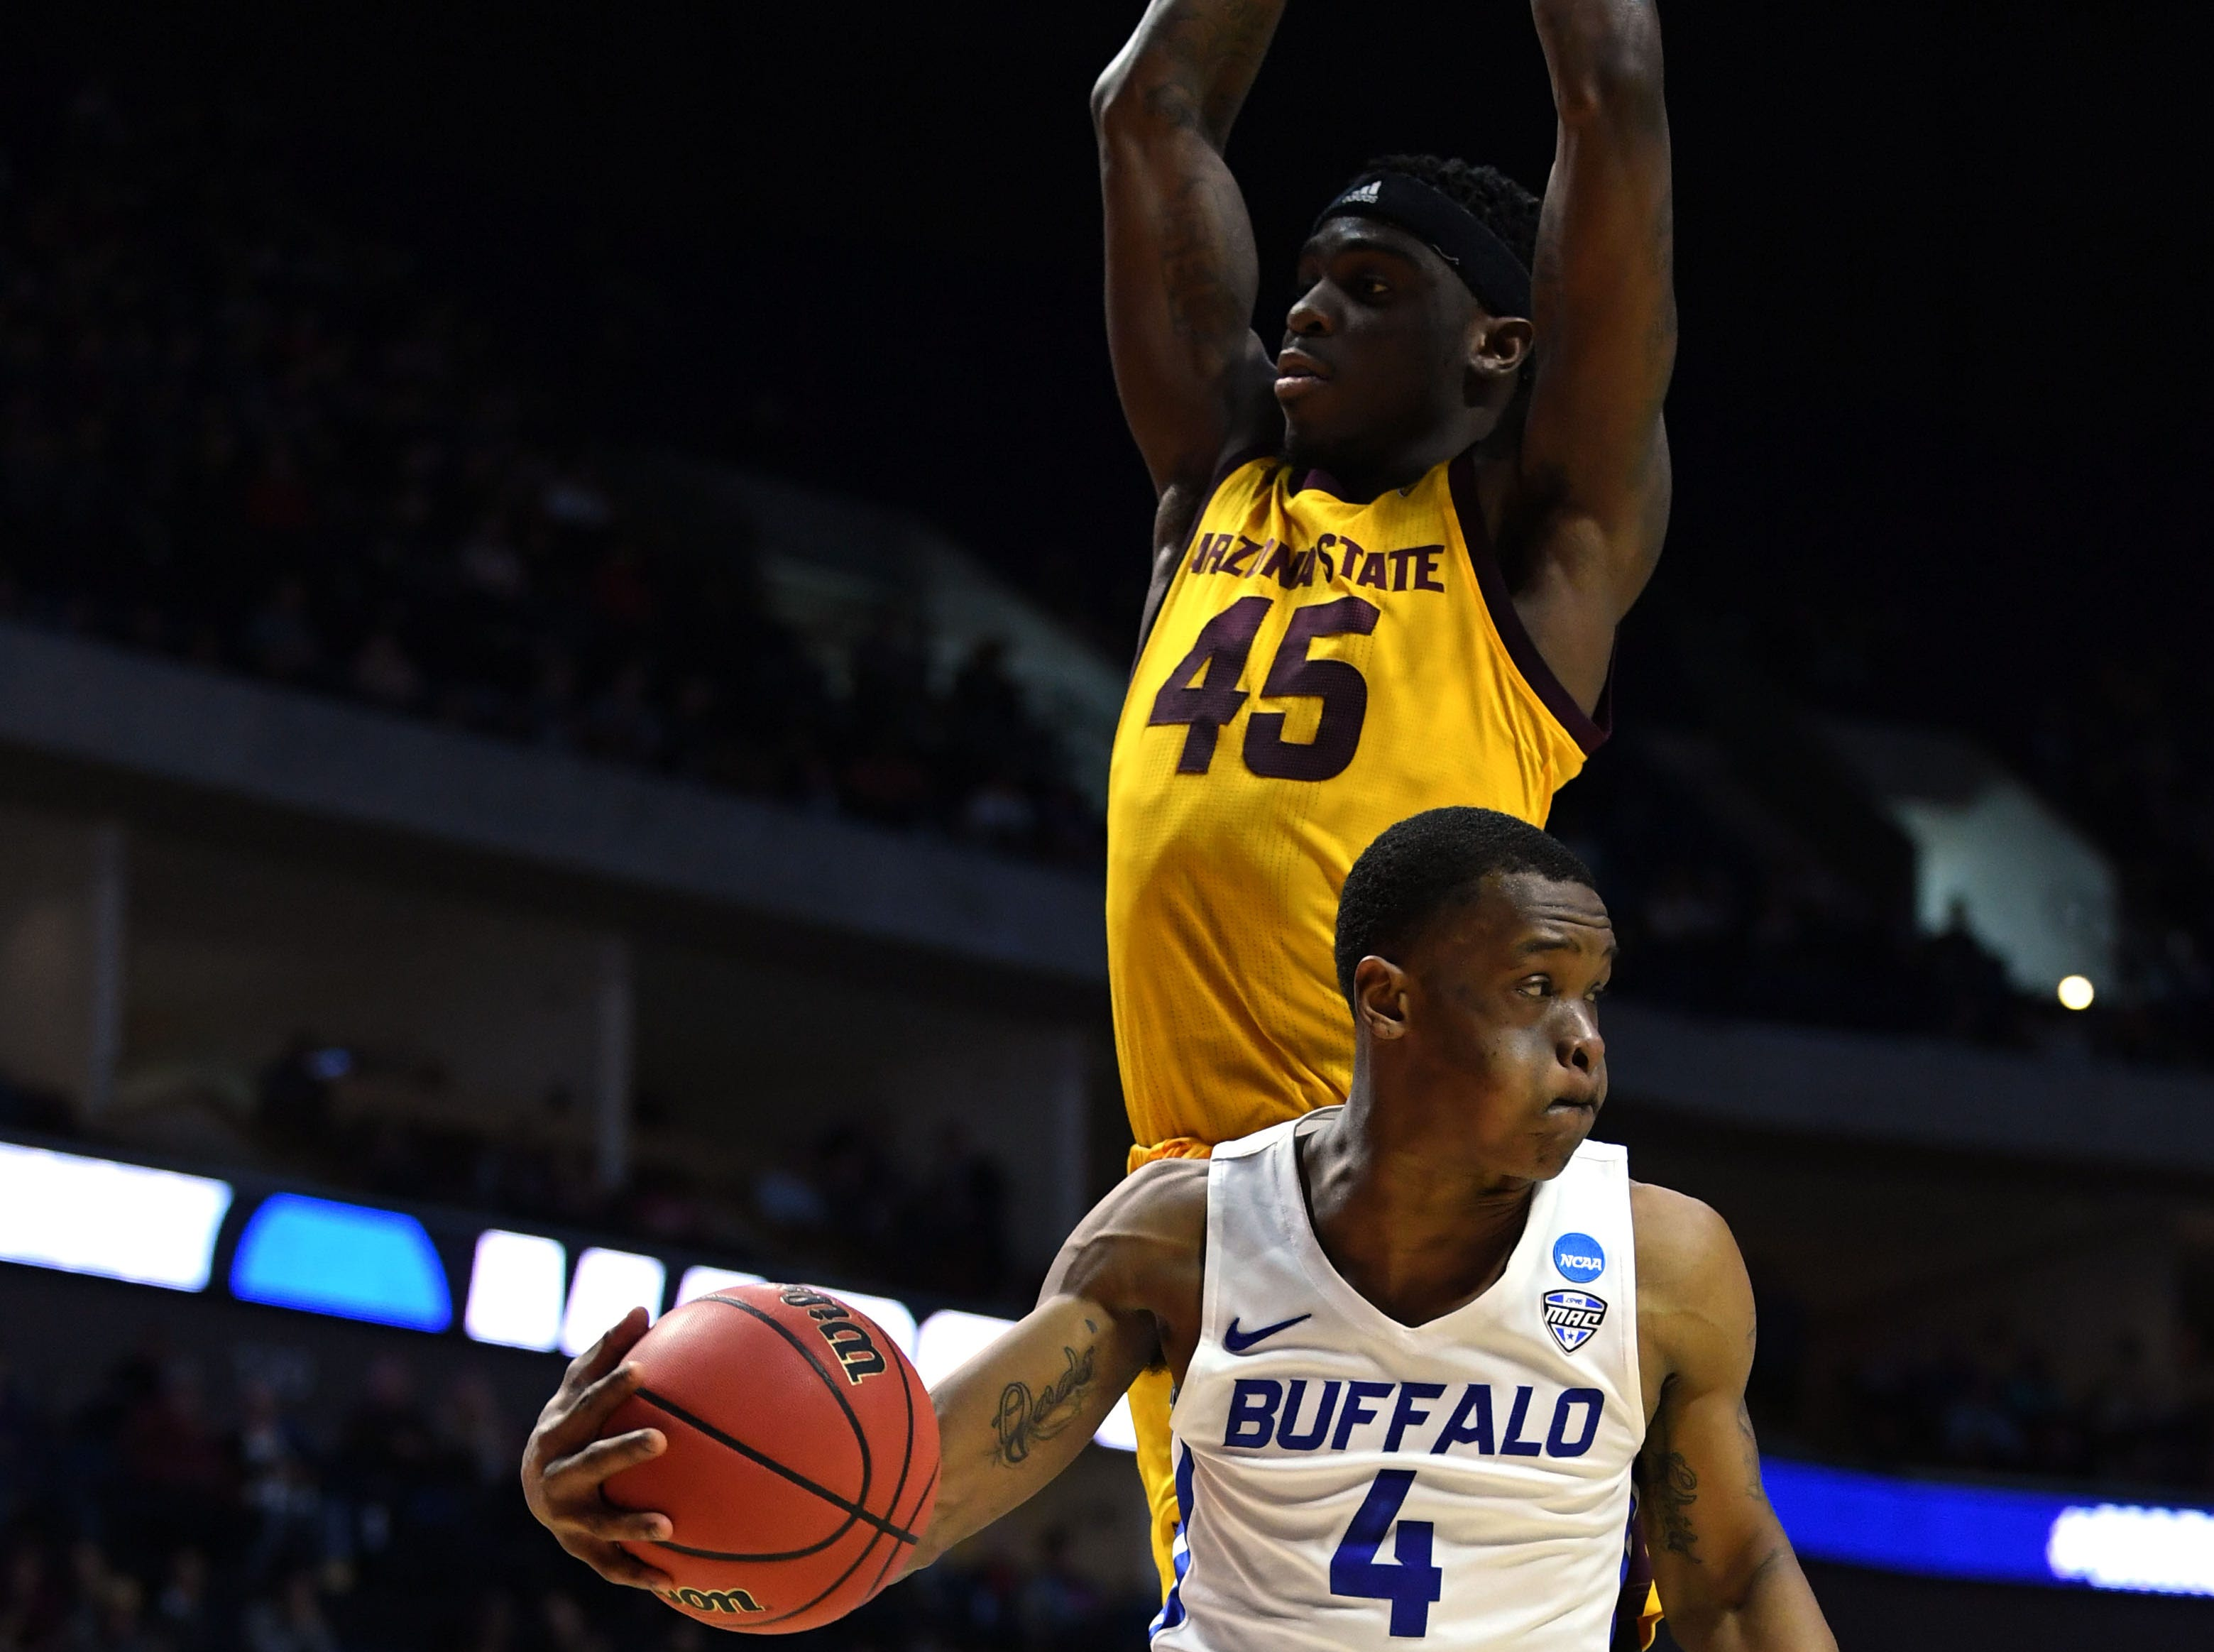 TULSA, OKLAHOMA - MARCH 22:  Davonta Jordan #4 of the Buffalo Bulls drives against Zylan Cheatham #45 of the Arizona State Sun Devils during the first half of the first round game of the 2019 NCAA Men's Basketball Tournament at BOK Center on March 22, 2019 in Tulsa, Oklahoma. (Photo by Harry How/Getty Images)